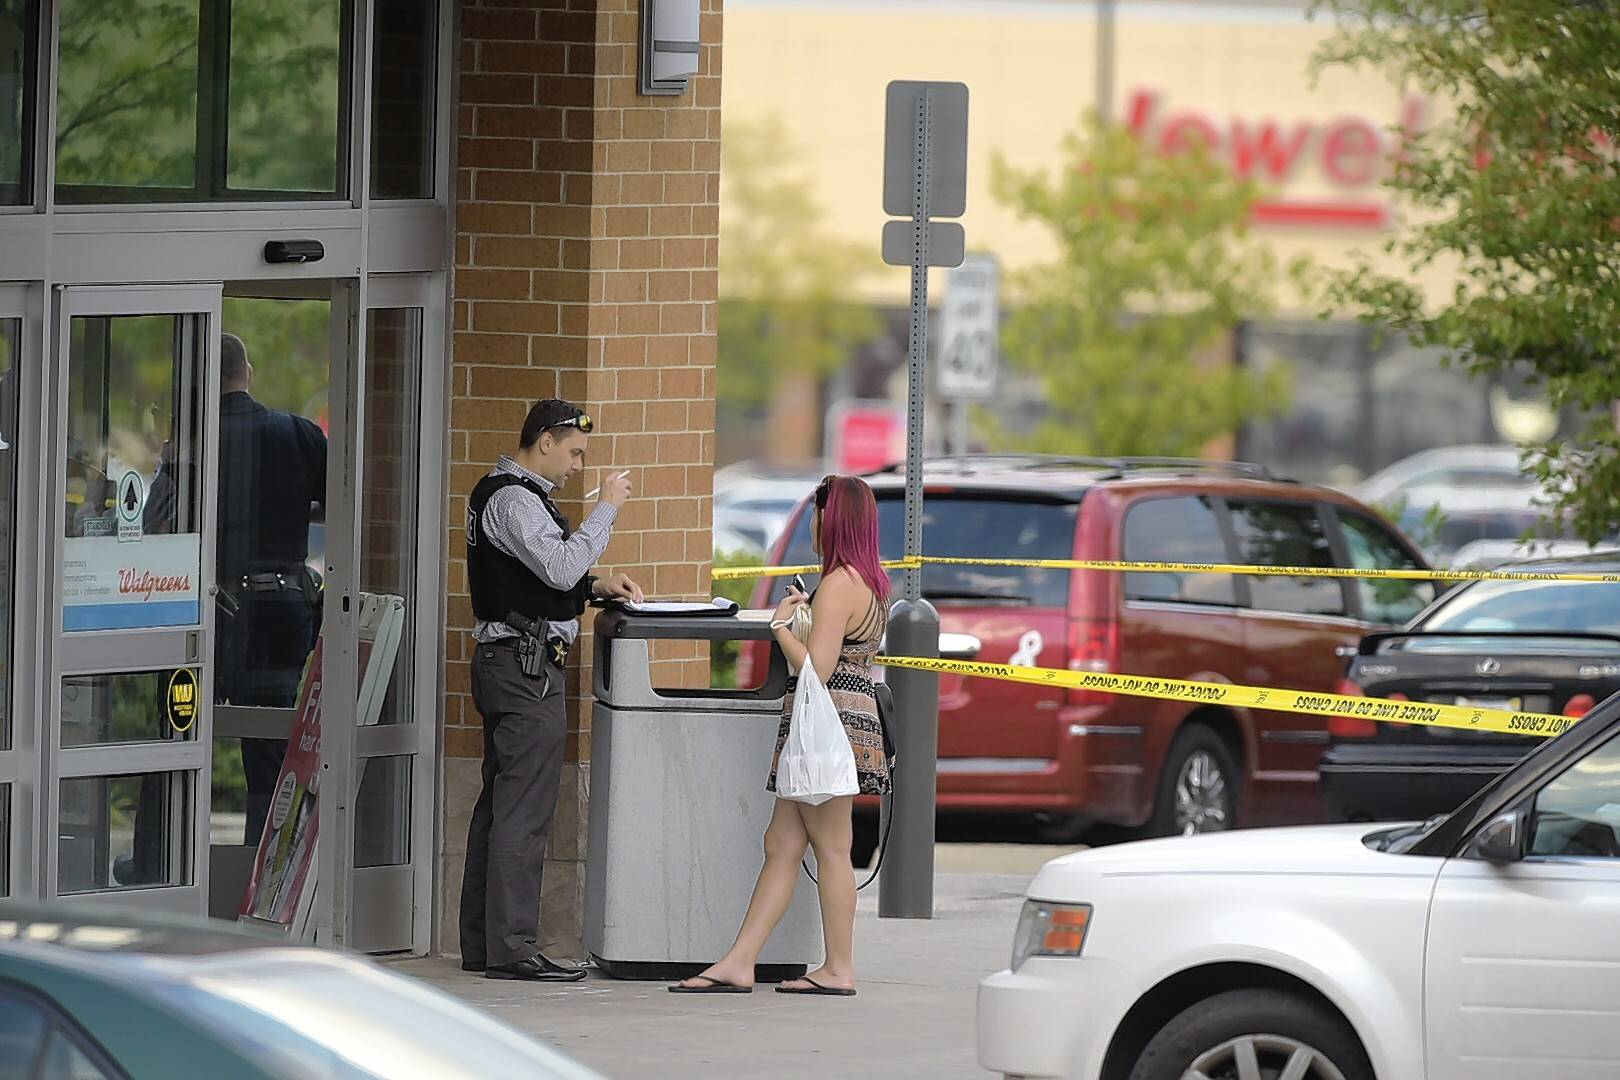 Investigators worked the scene of a shooting Monday in a Walgreens parking lot off Roselle and Wise roads in Schaumburg.